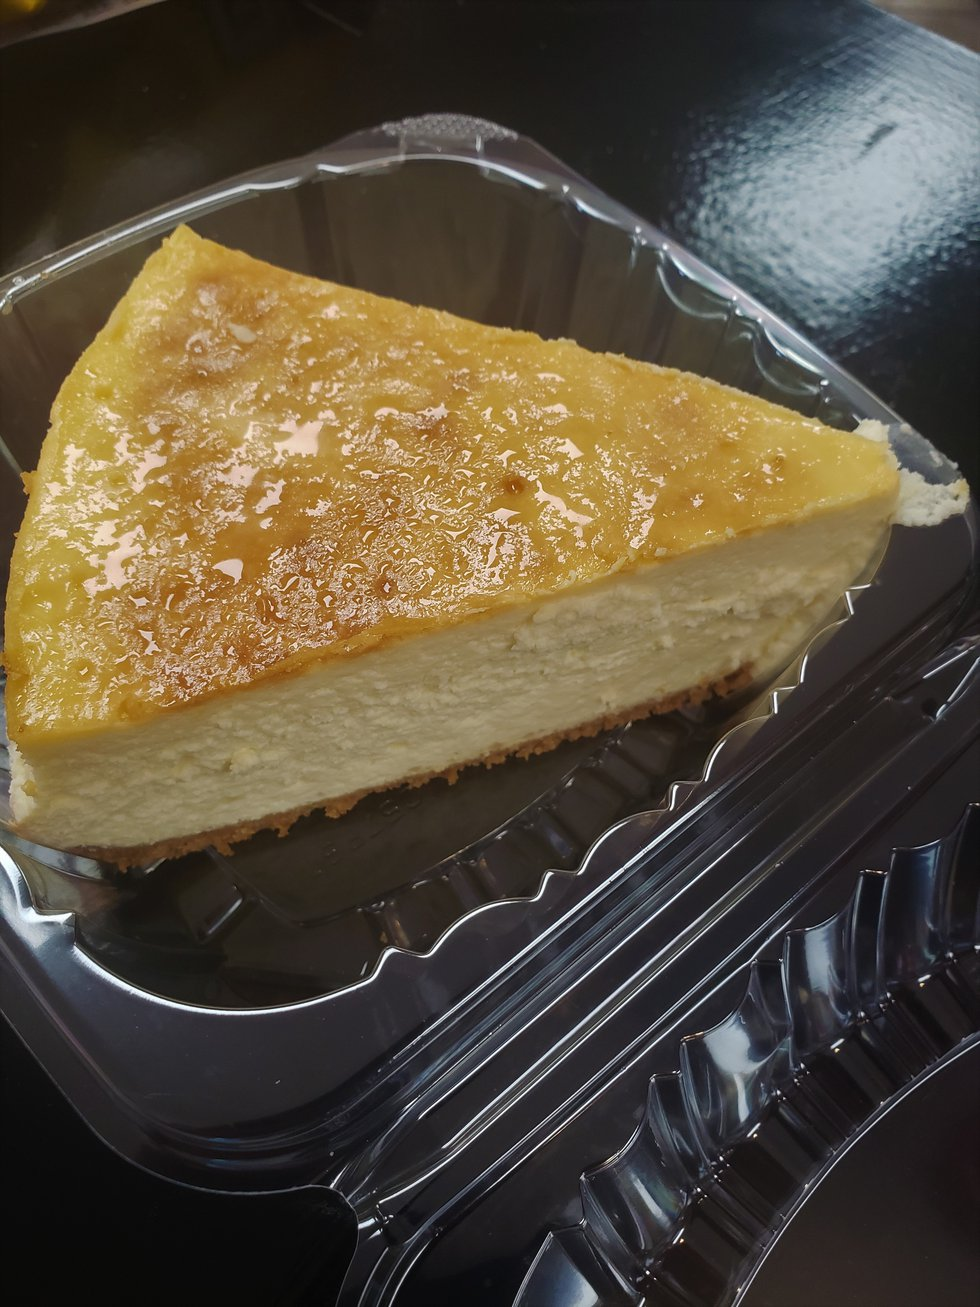 Rich, decadent, lovely...all words that describe this homemade cheesecake from A Taste of Italy.